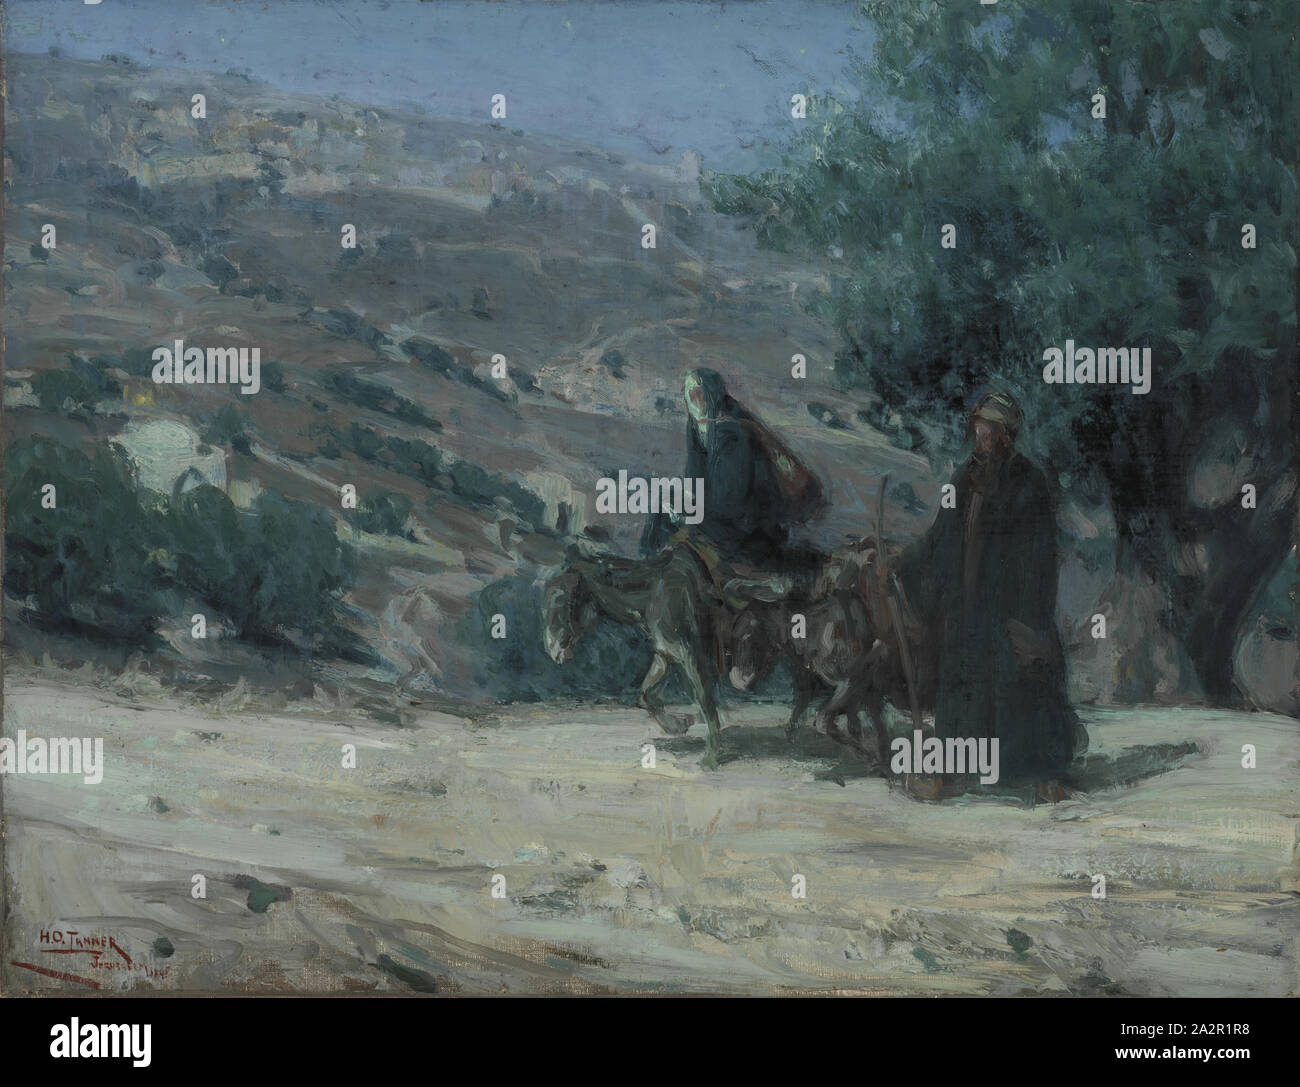 Henry Ossawa Tanner, American, 1859-1937, Flight into Egypt, 1899, oil on canvas, Unframed: 19 3/4 × 25 1/2 inches (50.2 × 64.8 cm Stock Photo